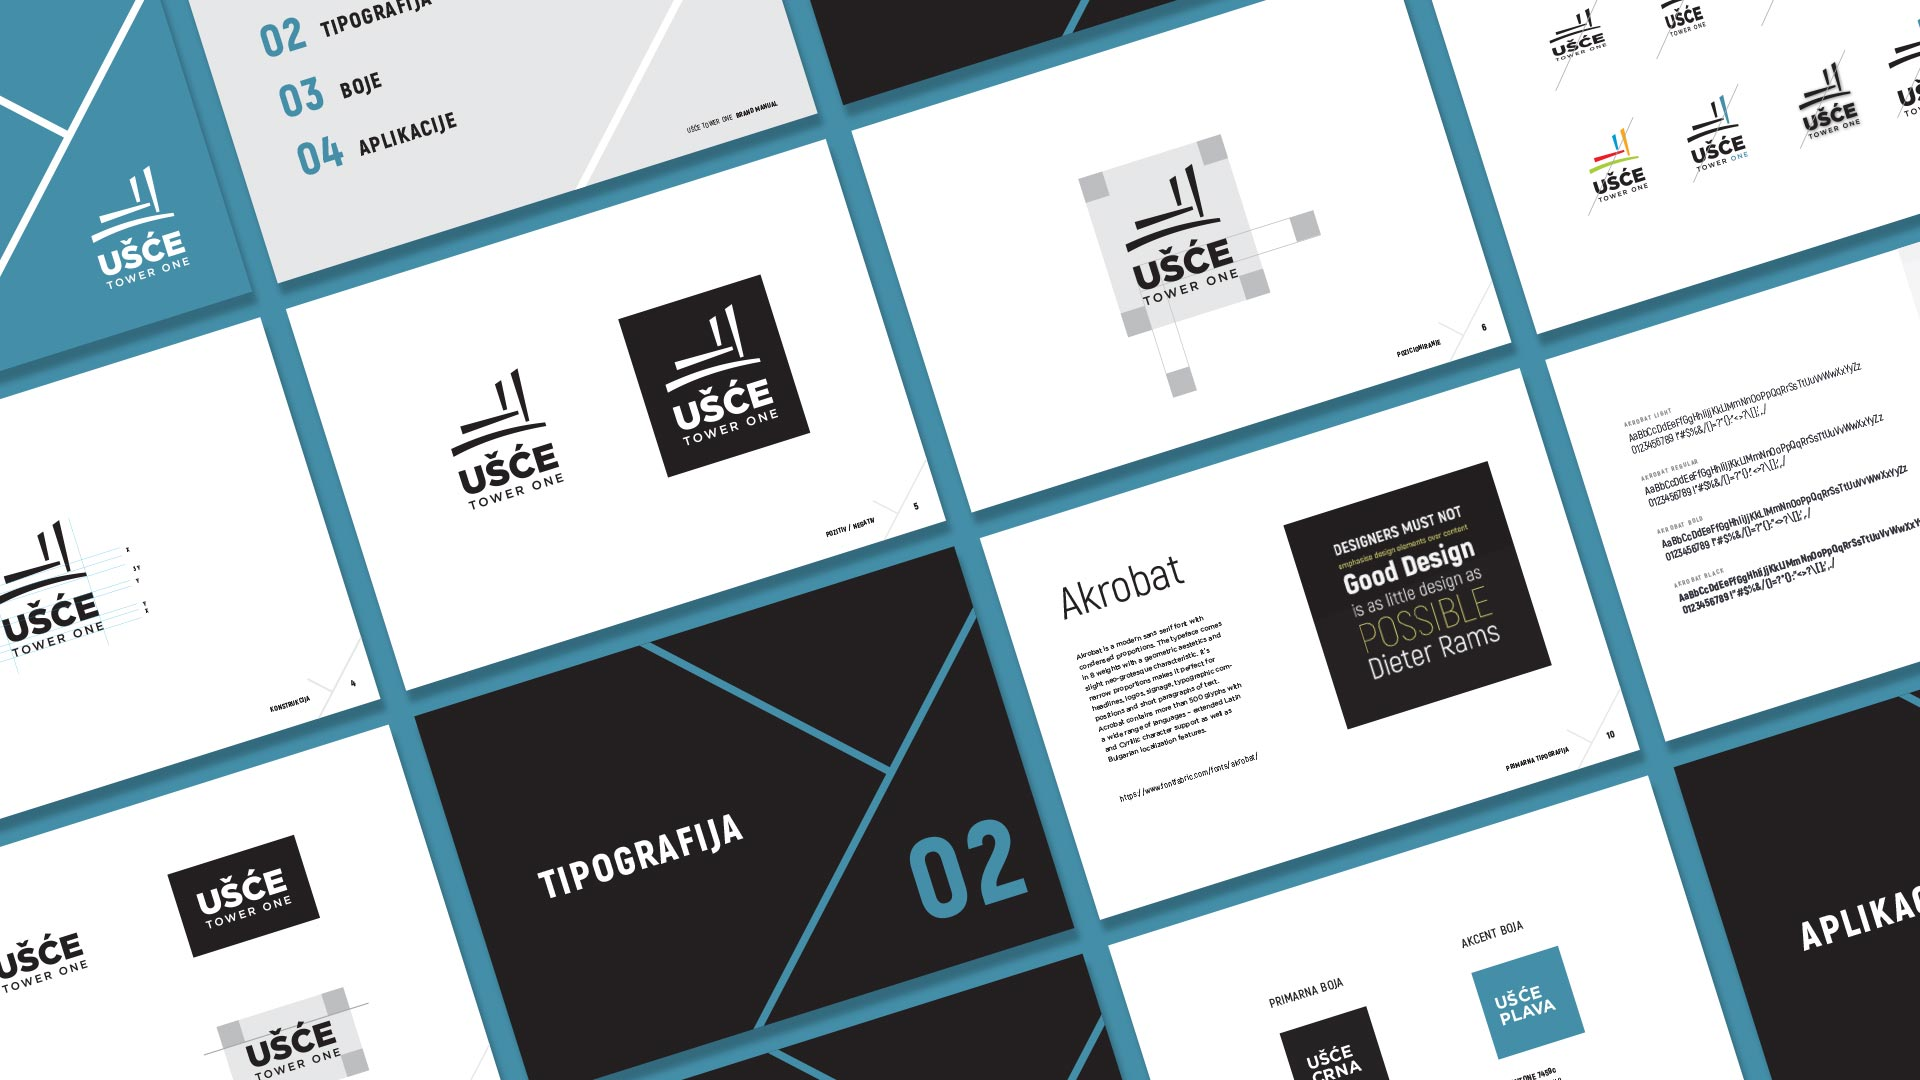 Usce tower one brand manual